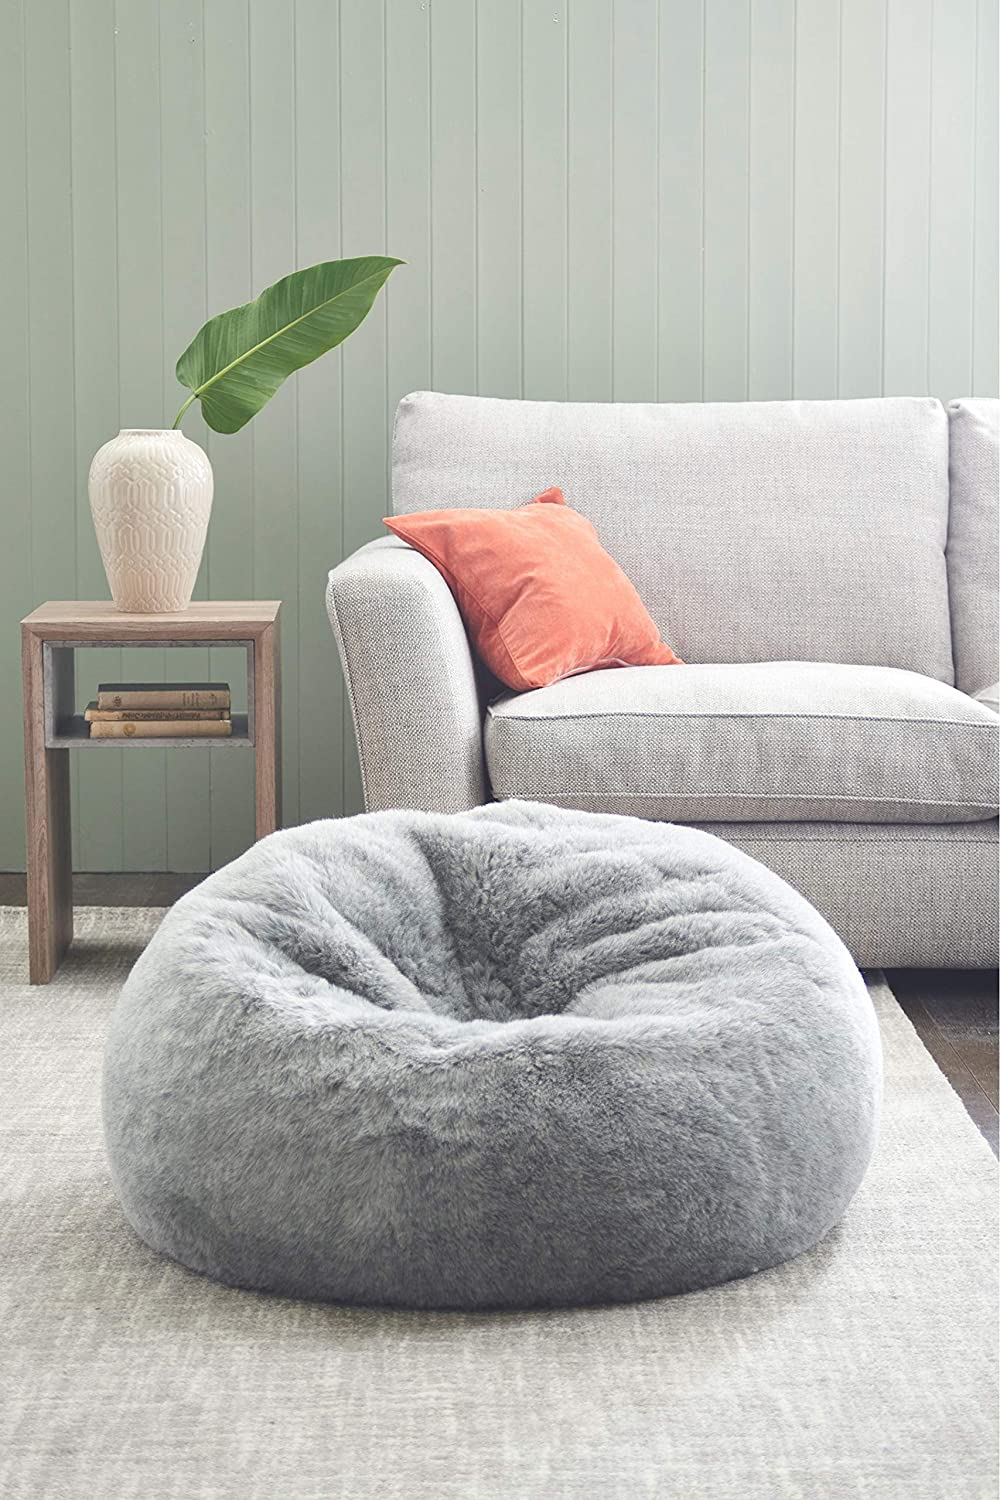 Cozy bean bag for your home. decor, GPD